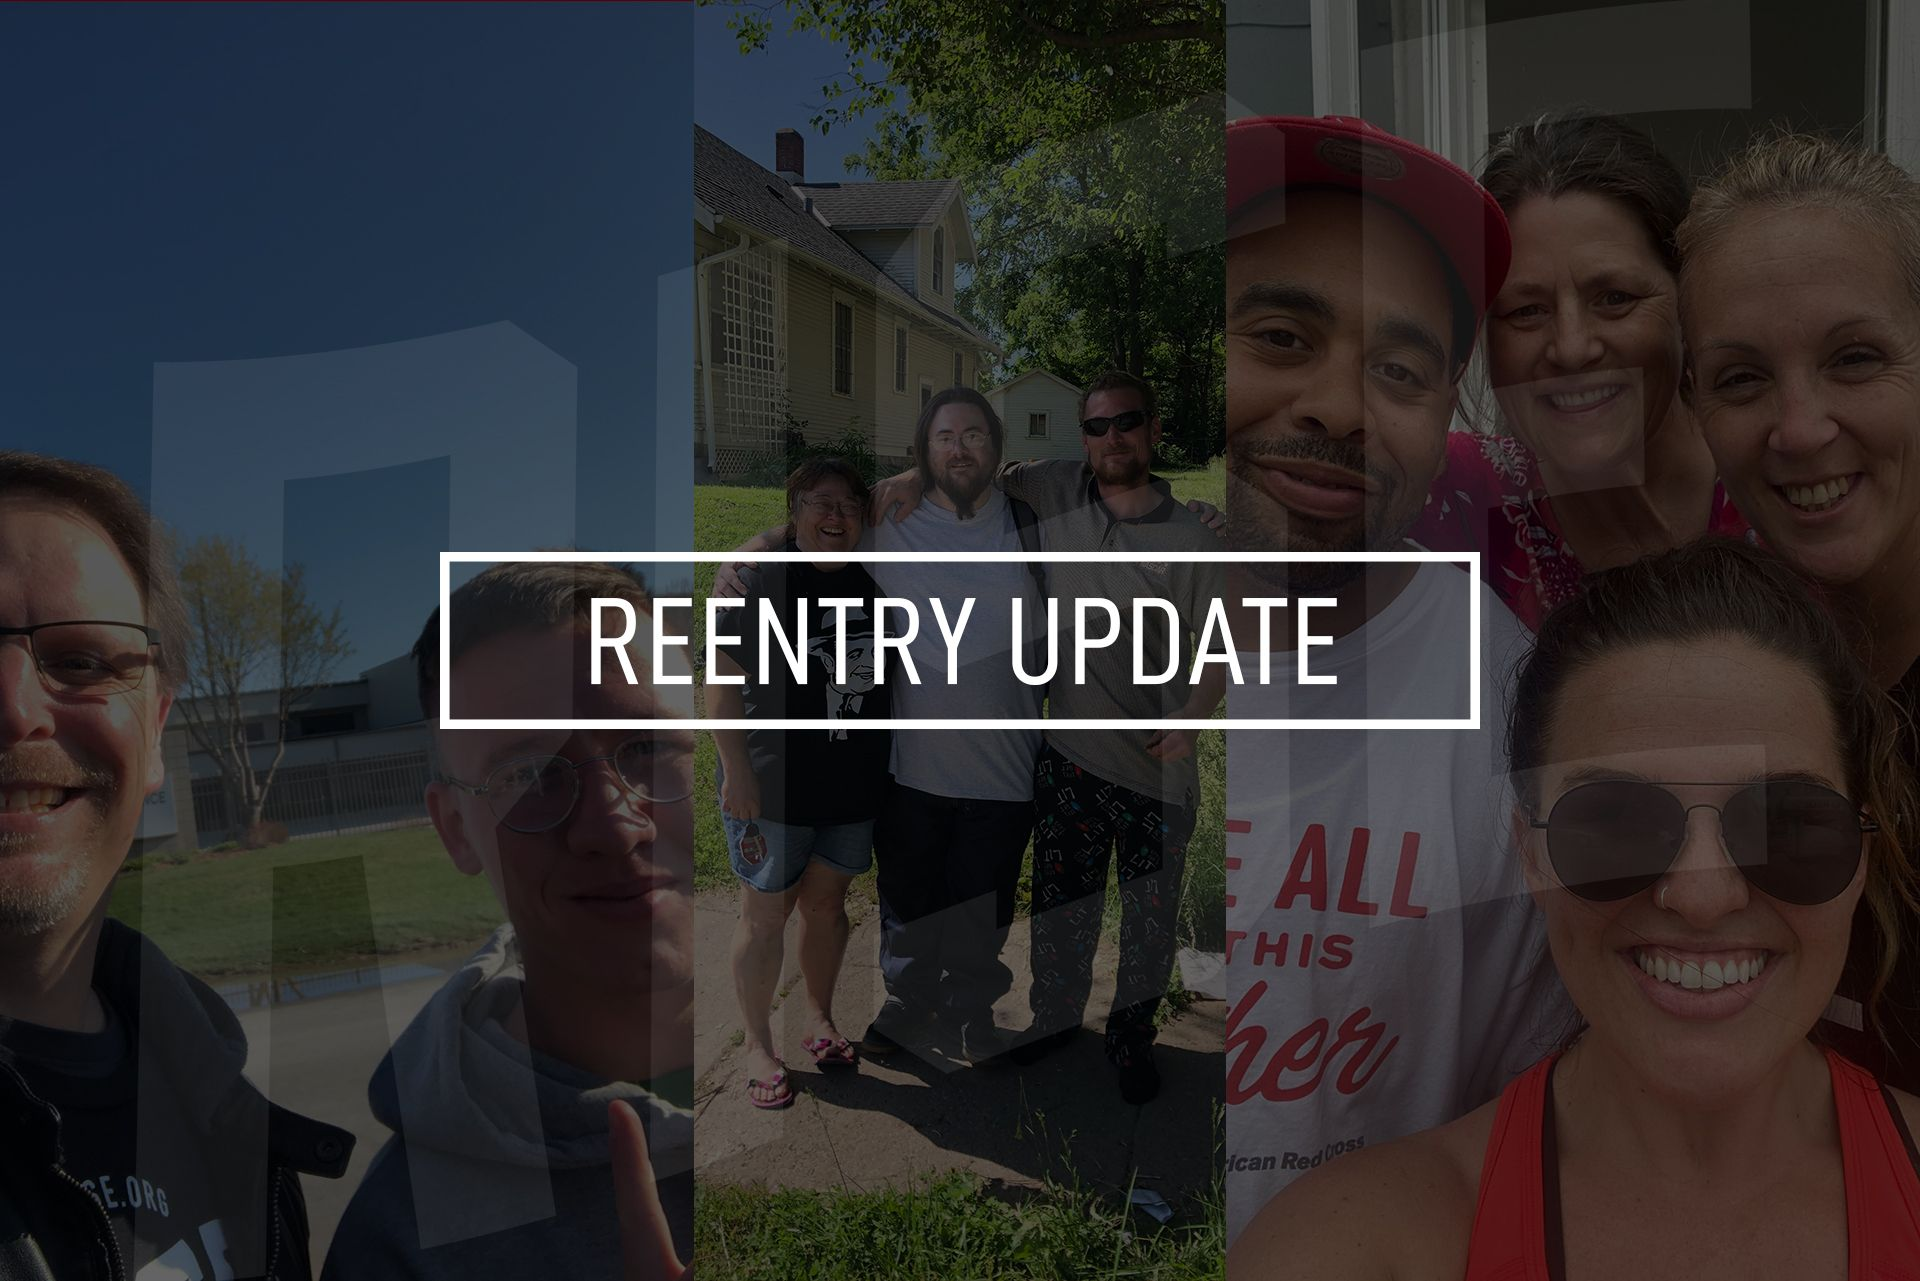 RISE Reentry Update for Quarter 2